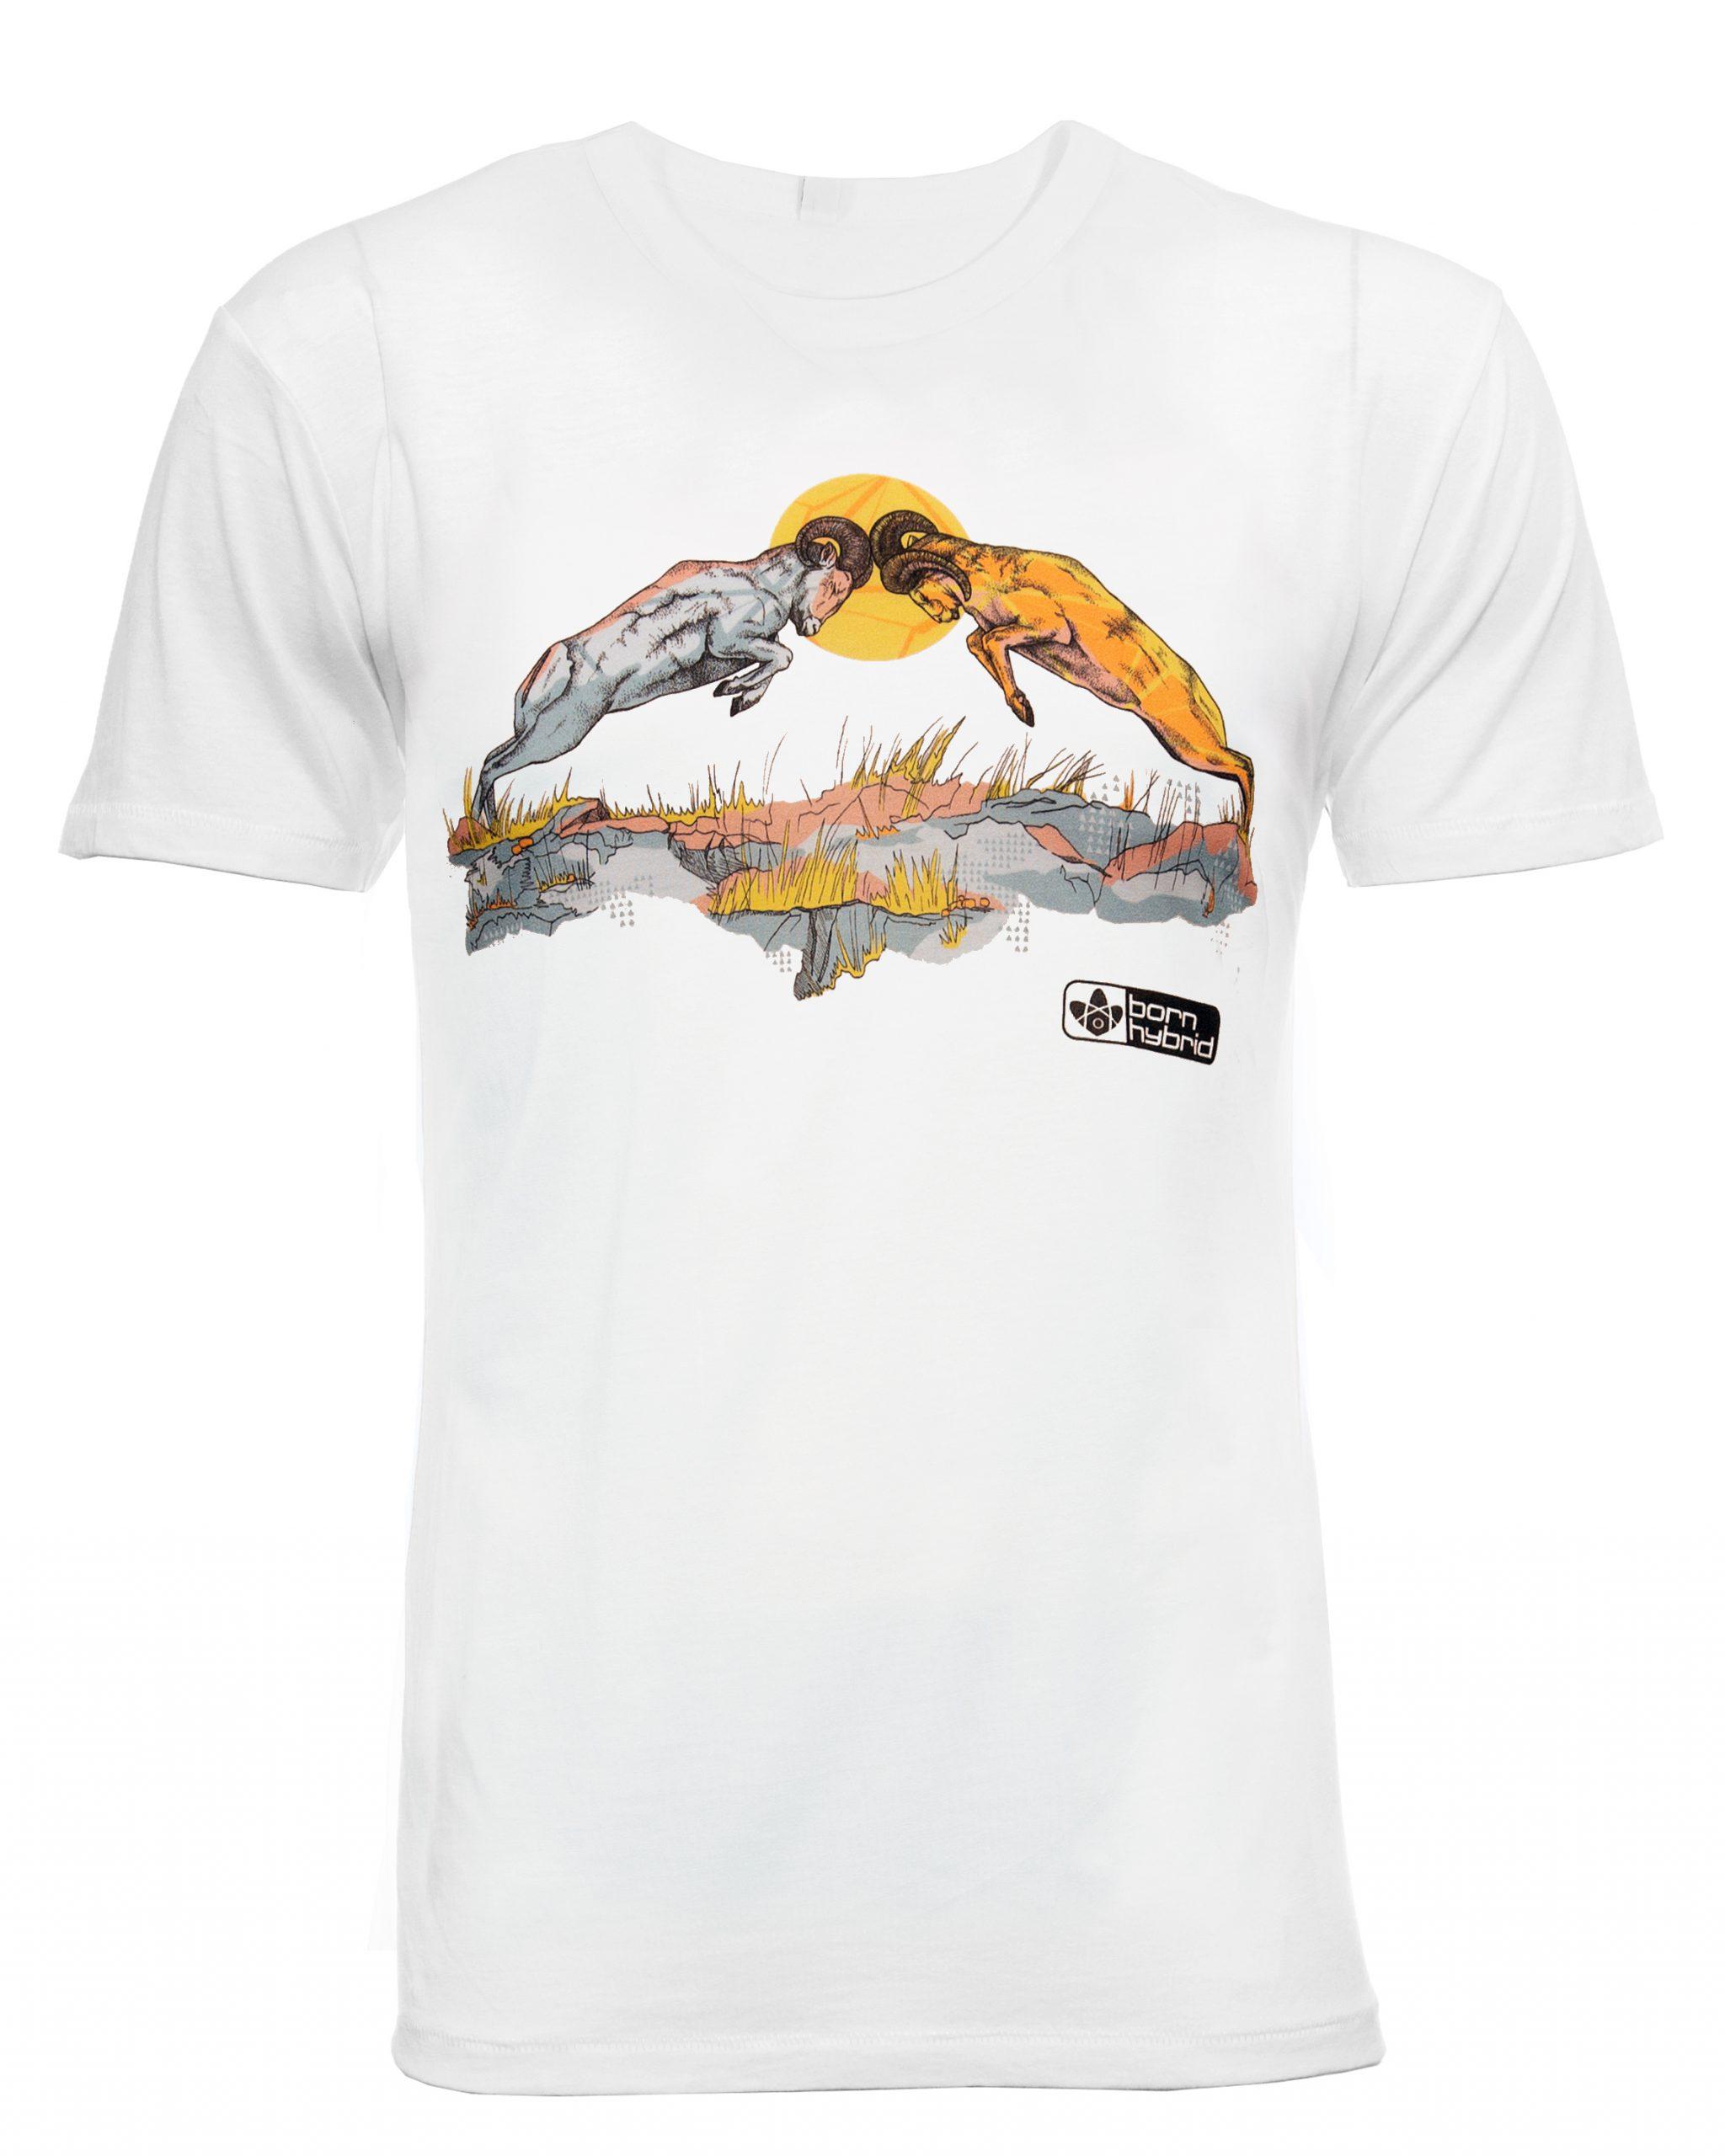 Ram Graphic T-shirt. Men's/Unisex fit. White graphic tee by Born Hybrid